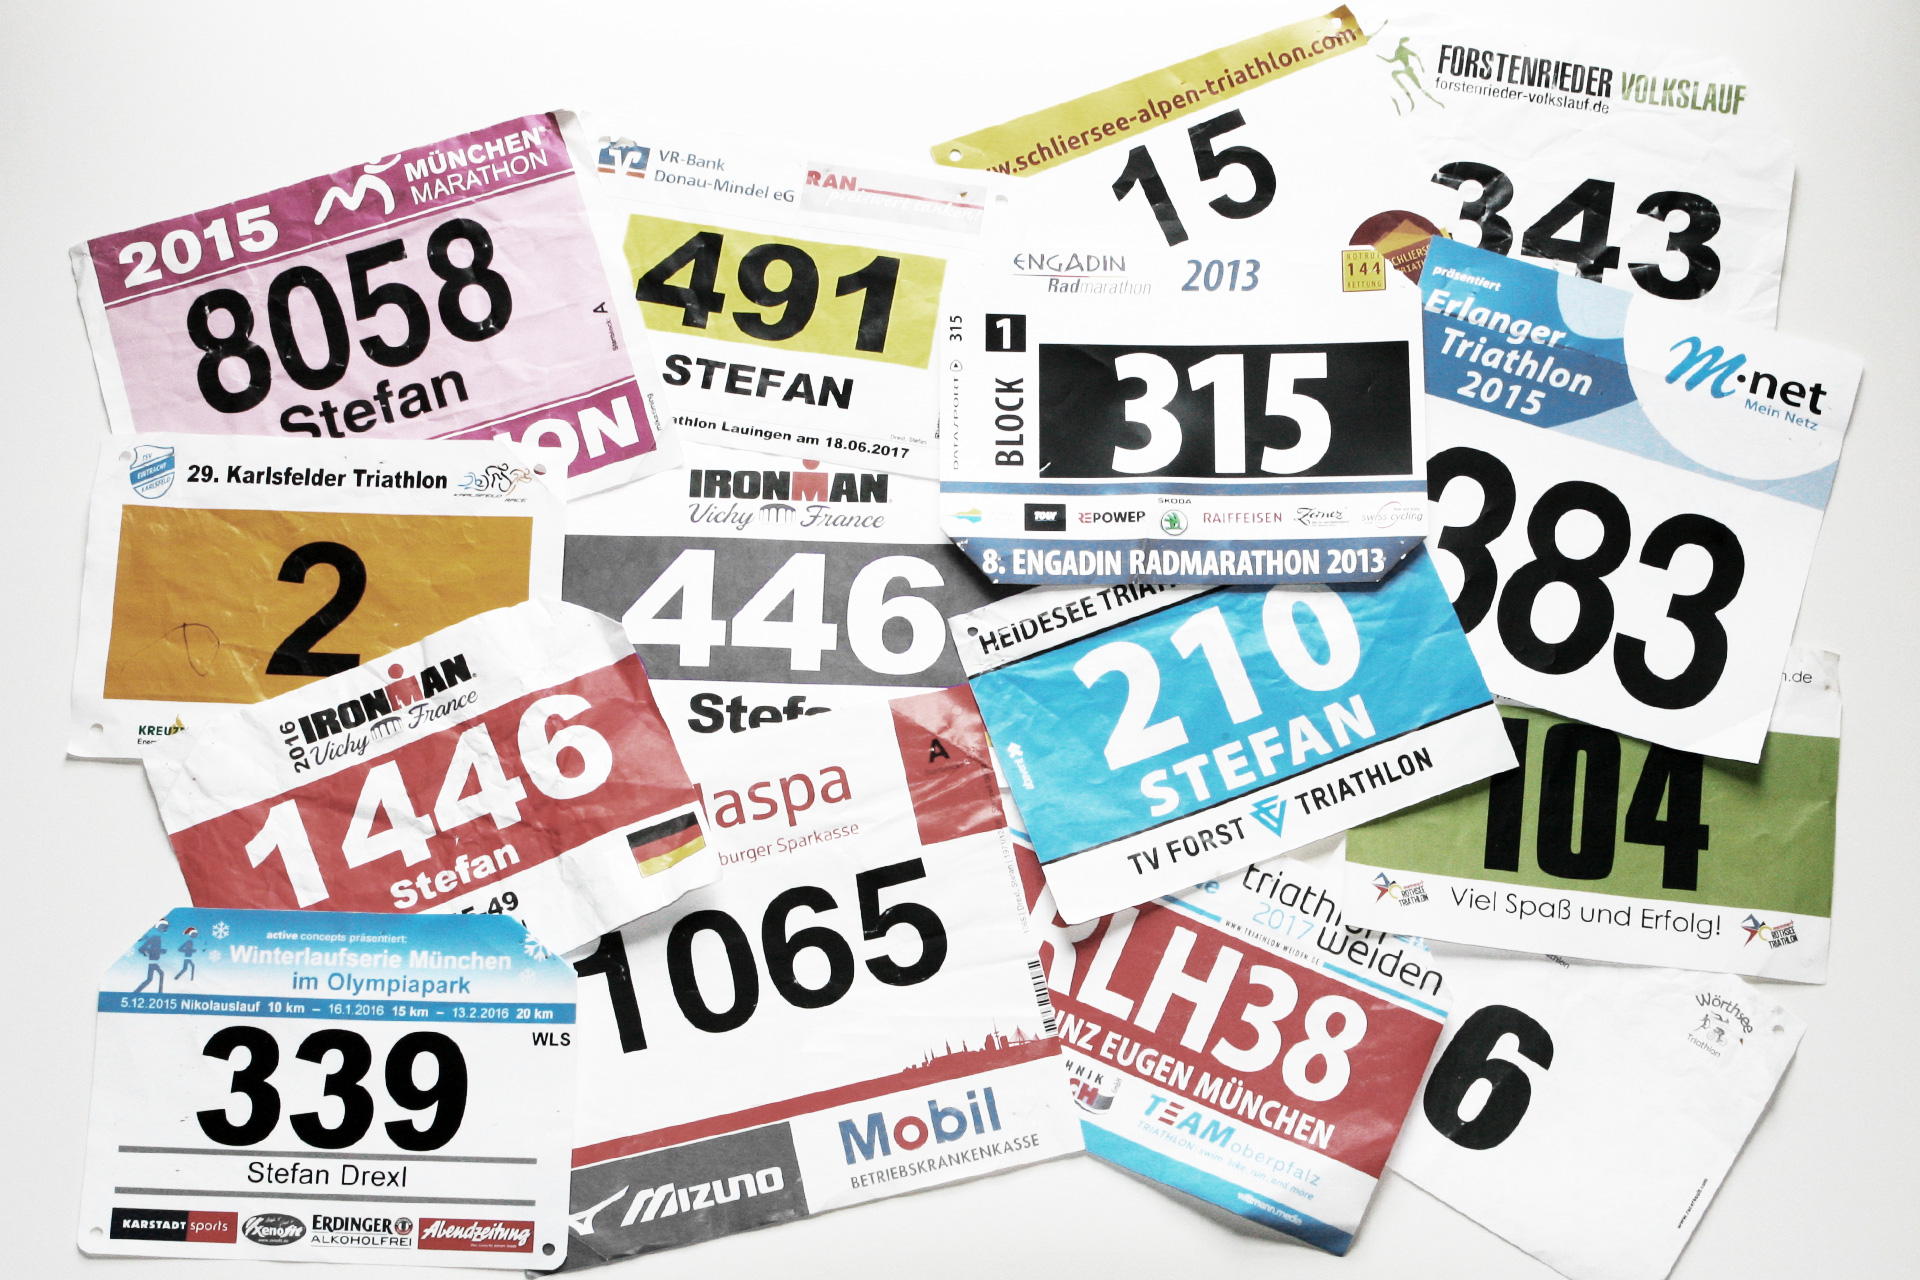 SUGAR & PAIN eat smart. train hard. Colorful Bibs & Numbers © stefandrexl.de